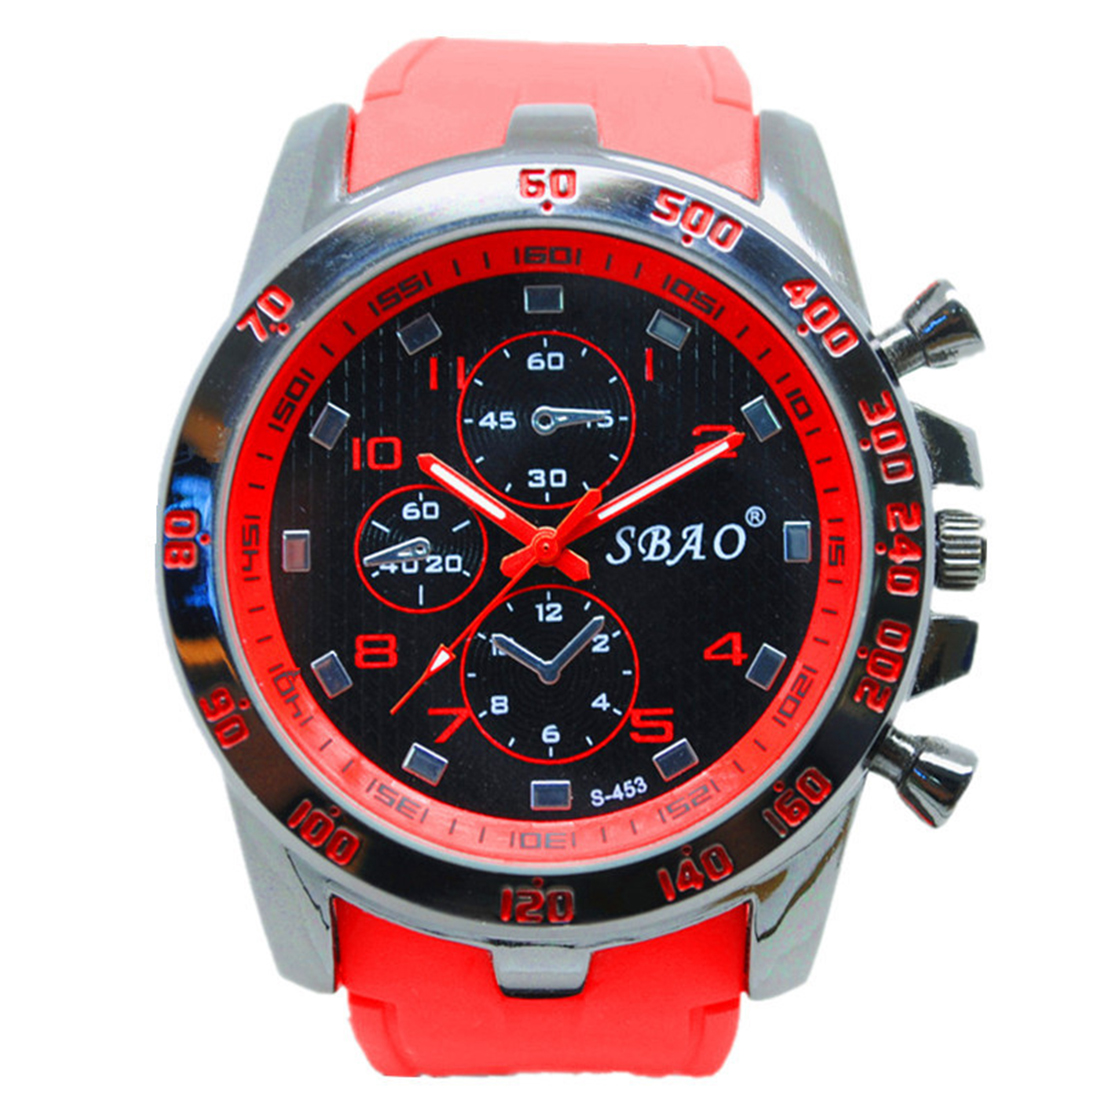 SBAO Stainless Steel Luxury Sport Analog Quartz Modern Men Fashion Wrist Watch Red